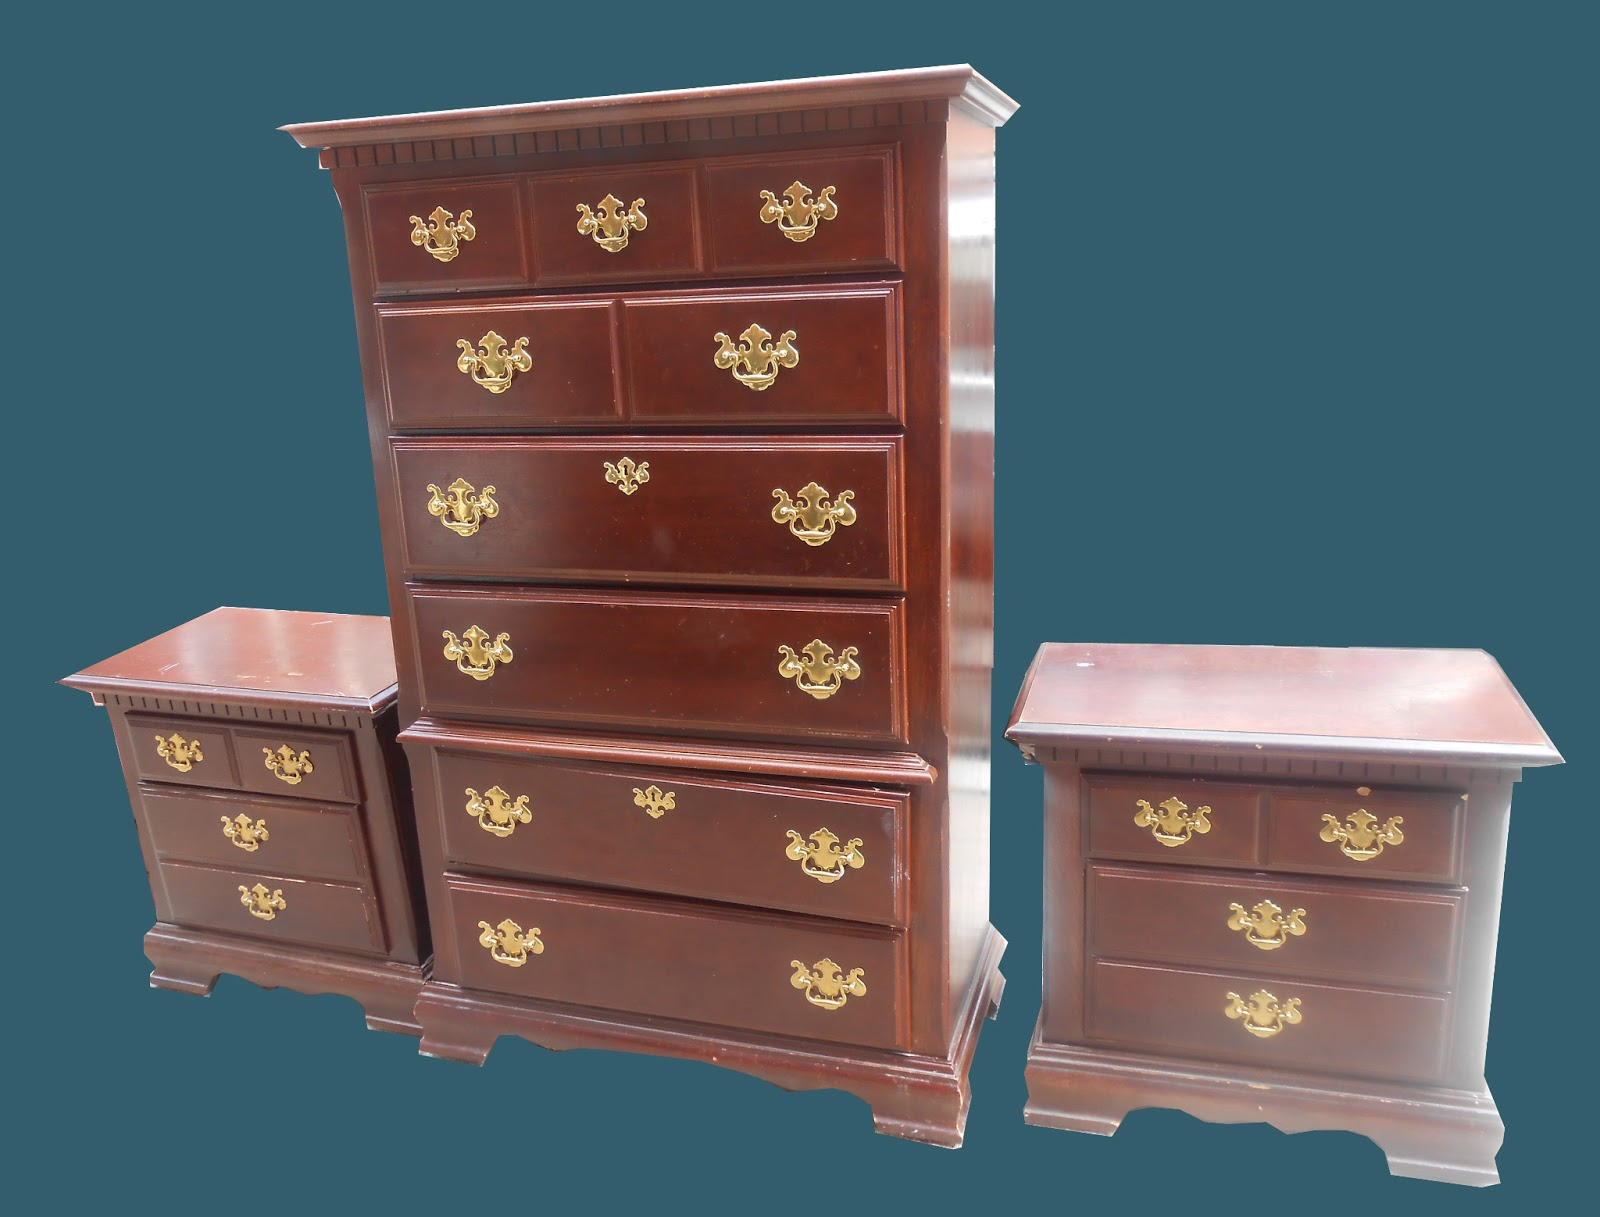 Uhuru furniture amp collectibles federal style chest accented in dental crown molding sold